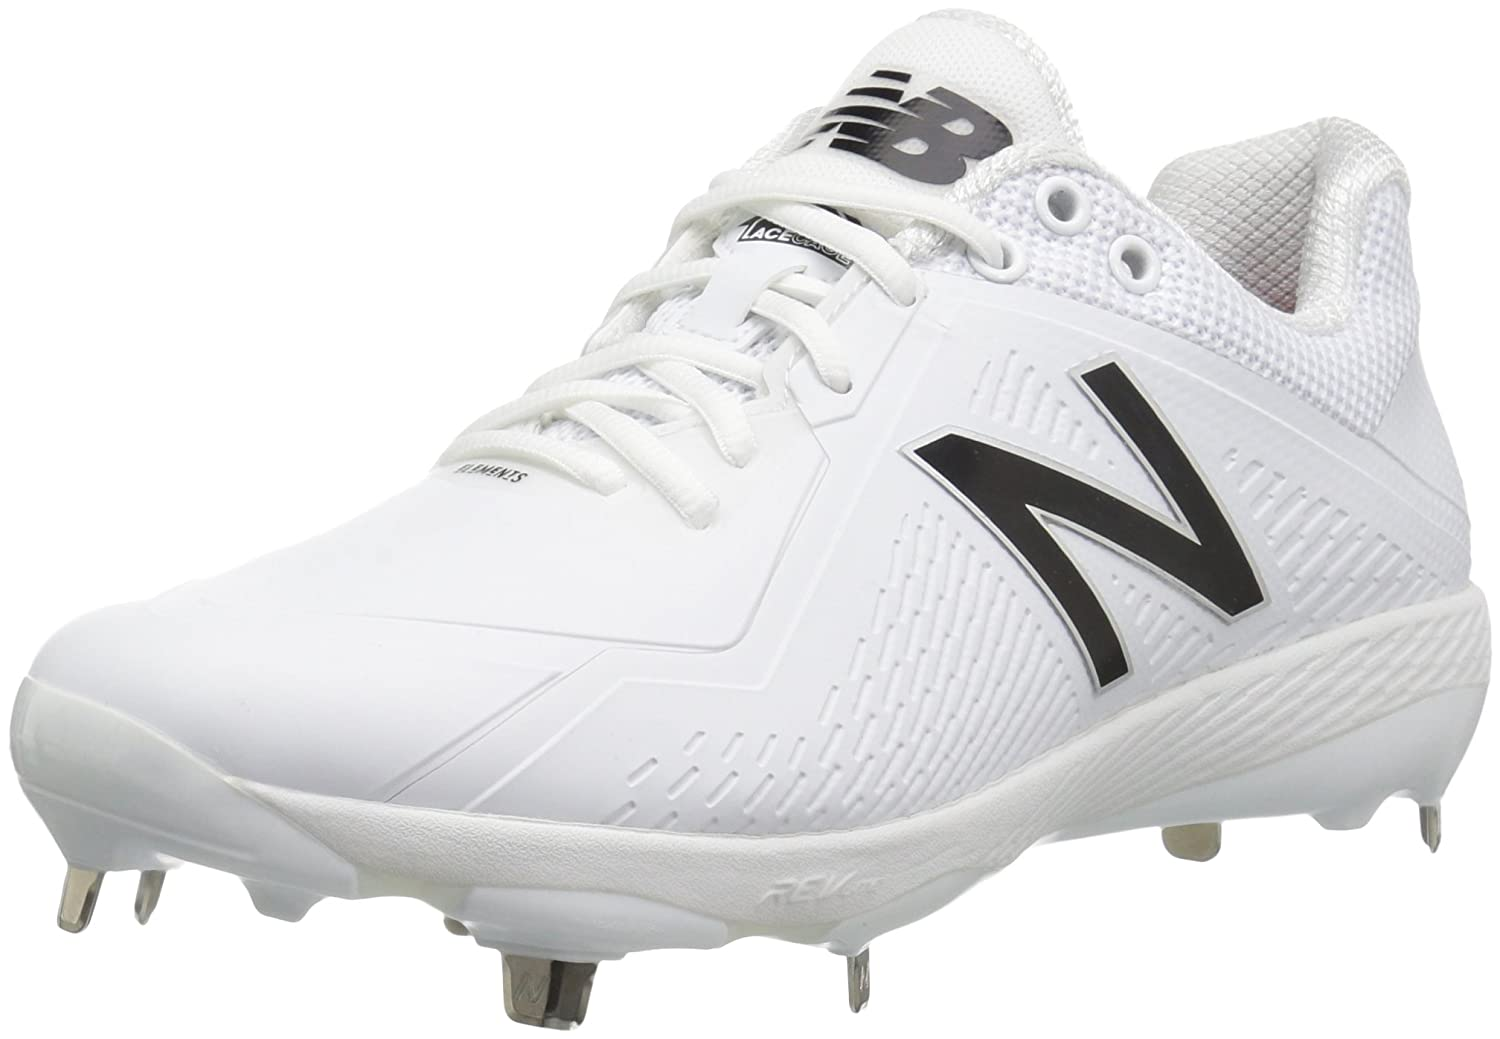 Mens 4040v4 Elements Pack Metal Baseball Cleat Wide 2E